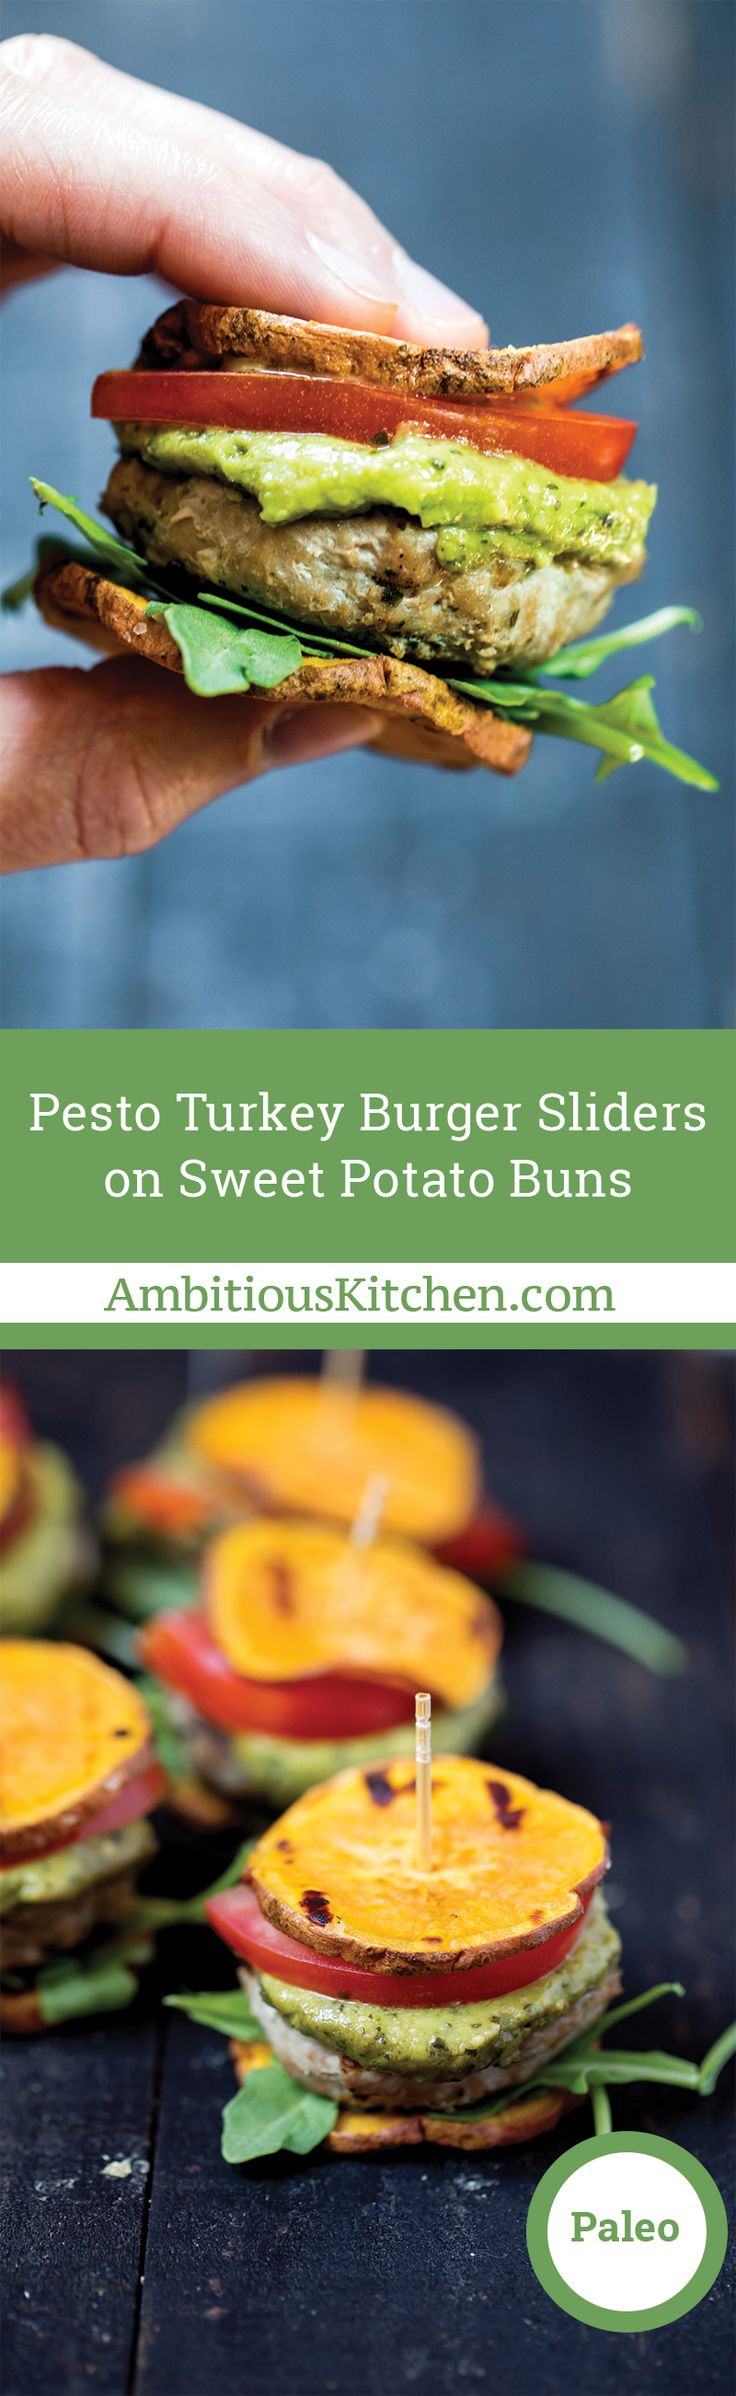 Paleo and gluten free turkey burger sliders on sweet potato buns. An easy bite sized recipe or appetizer!